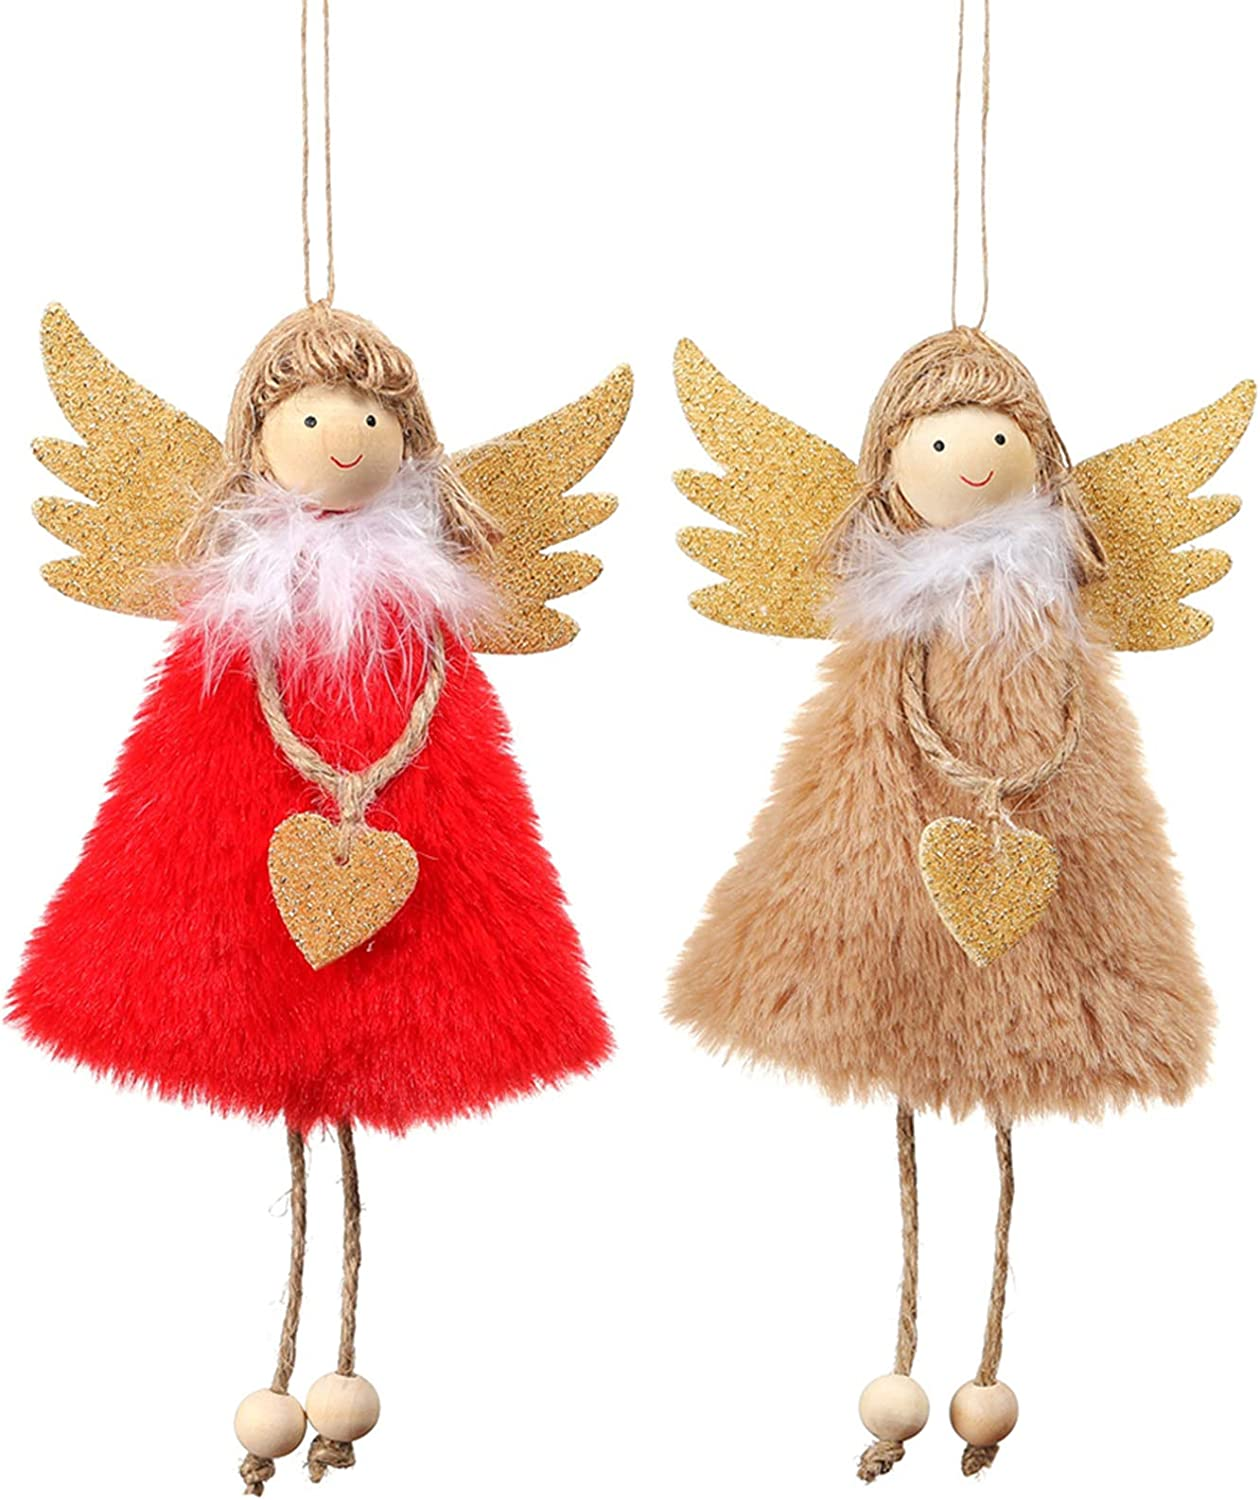 PGYFIS Christmas Decoration 2 Pieces Angel Doll Pendant Tree Hanging Ornaments Christmas Crafts Elves Decorations (Angel-Red&Khaki): Kitchen & Dining